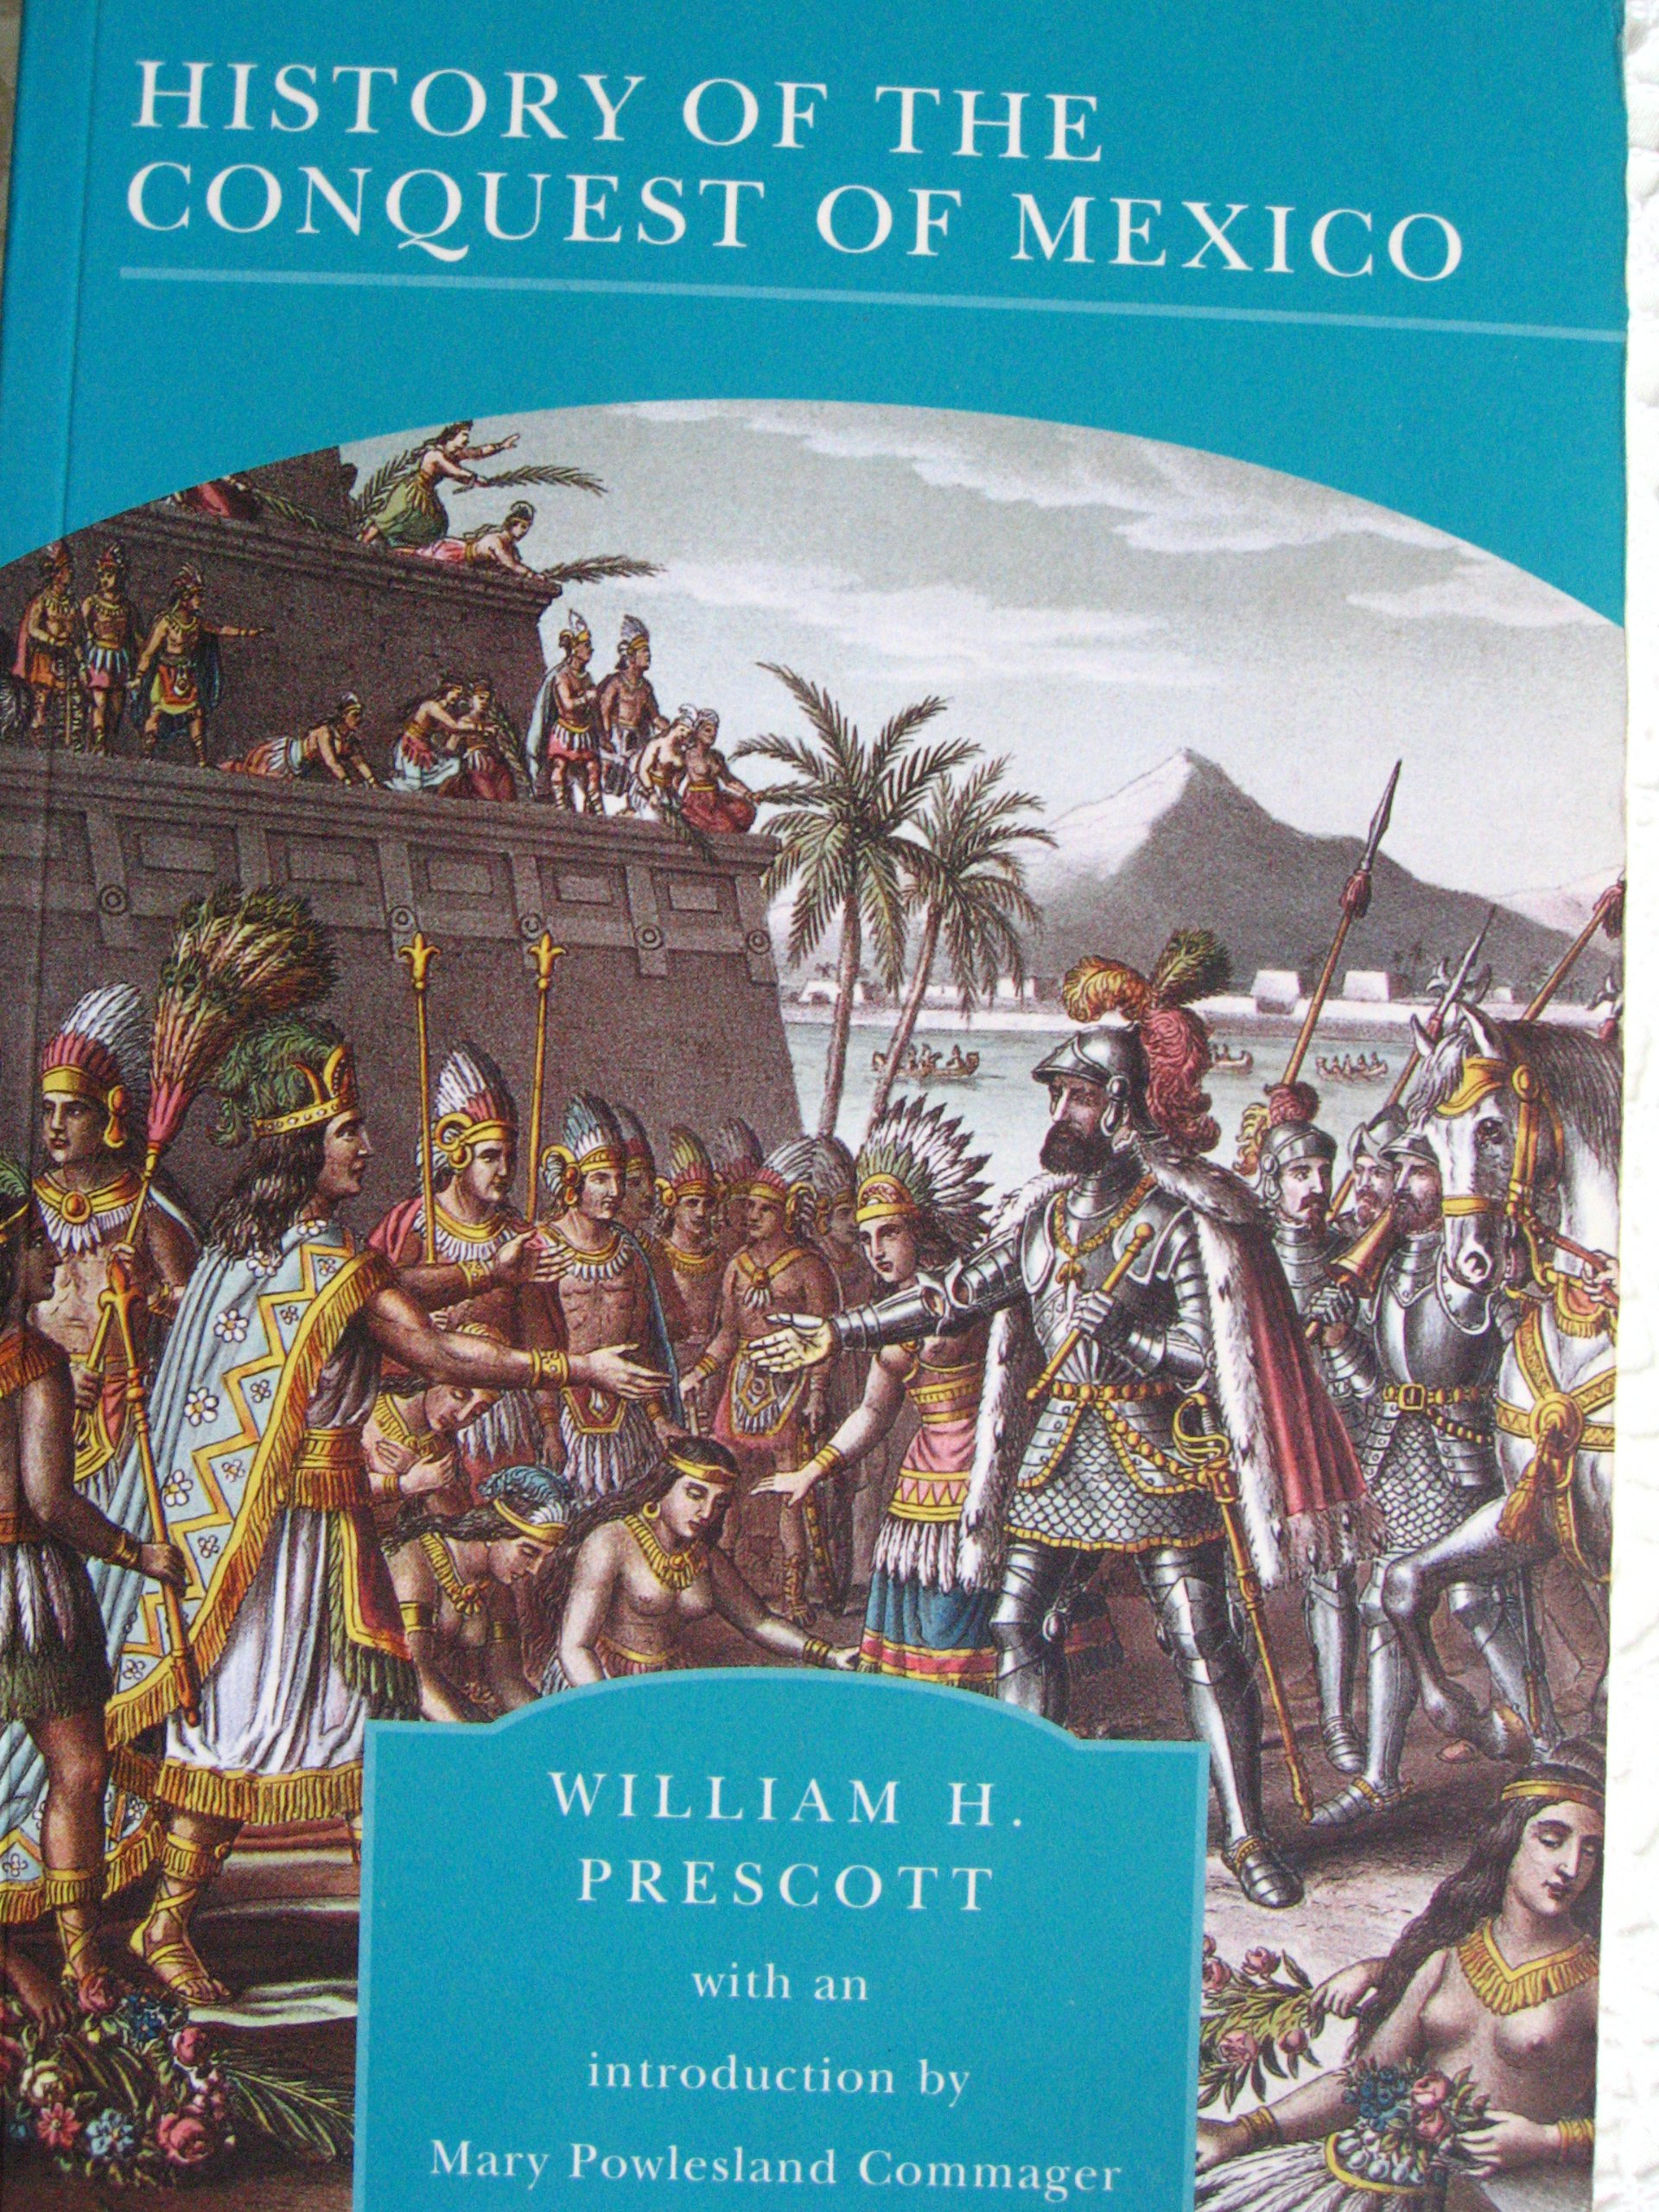 The History of the Conquest of Mexico pdf